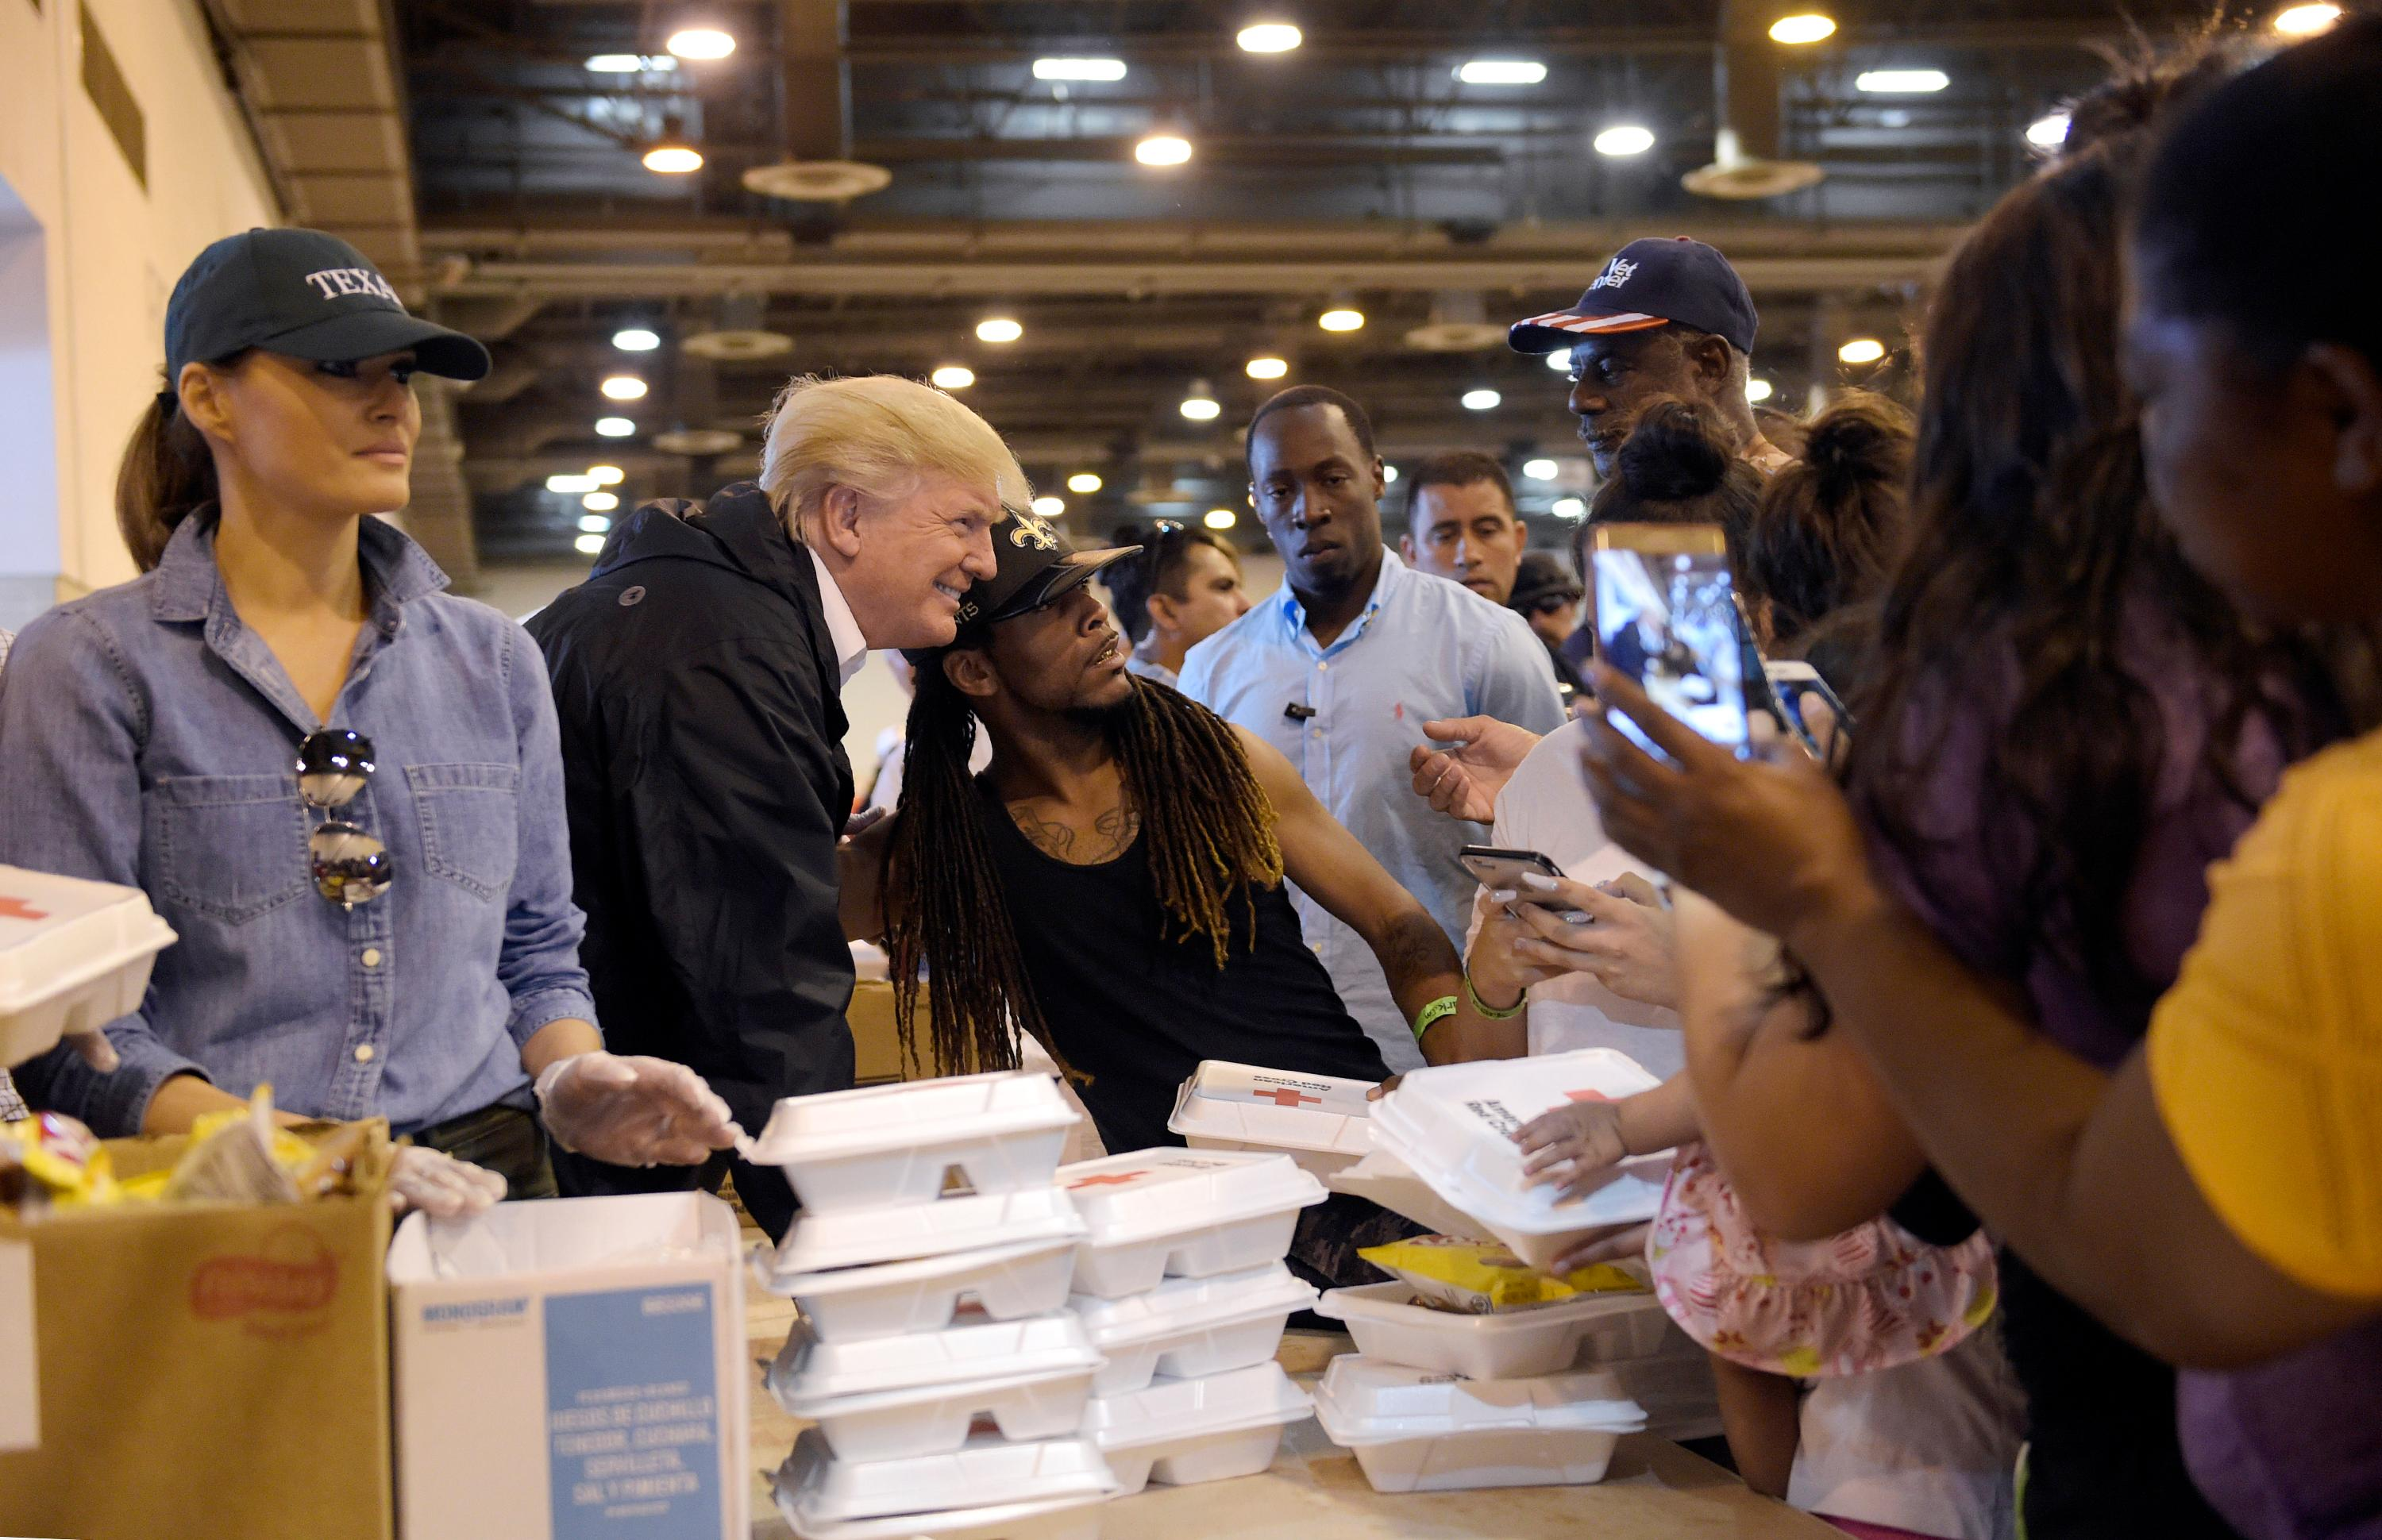 President Donald Trump and Melania Trump pass out food and meet people impacted by Hurricane Harvey during a visit to the NRG Center in Houston, Saturday, Sept. 2, 2017. It was his second trip to Texas in a week, and this time his first order of business was to meet with those affected by the record-setting rainfall and flooding. He's also set to survey some of the damage and head to Lake Charles, Louisiana, another hard-hit area.  (AP Photo/Susan Walsh)